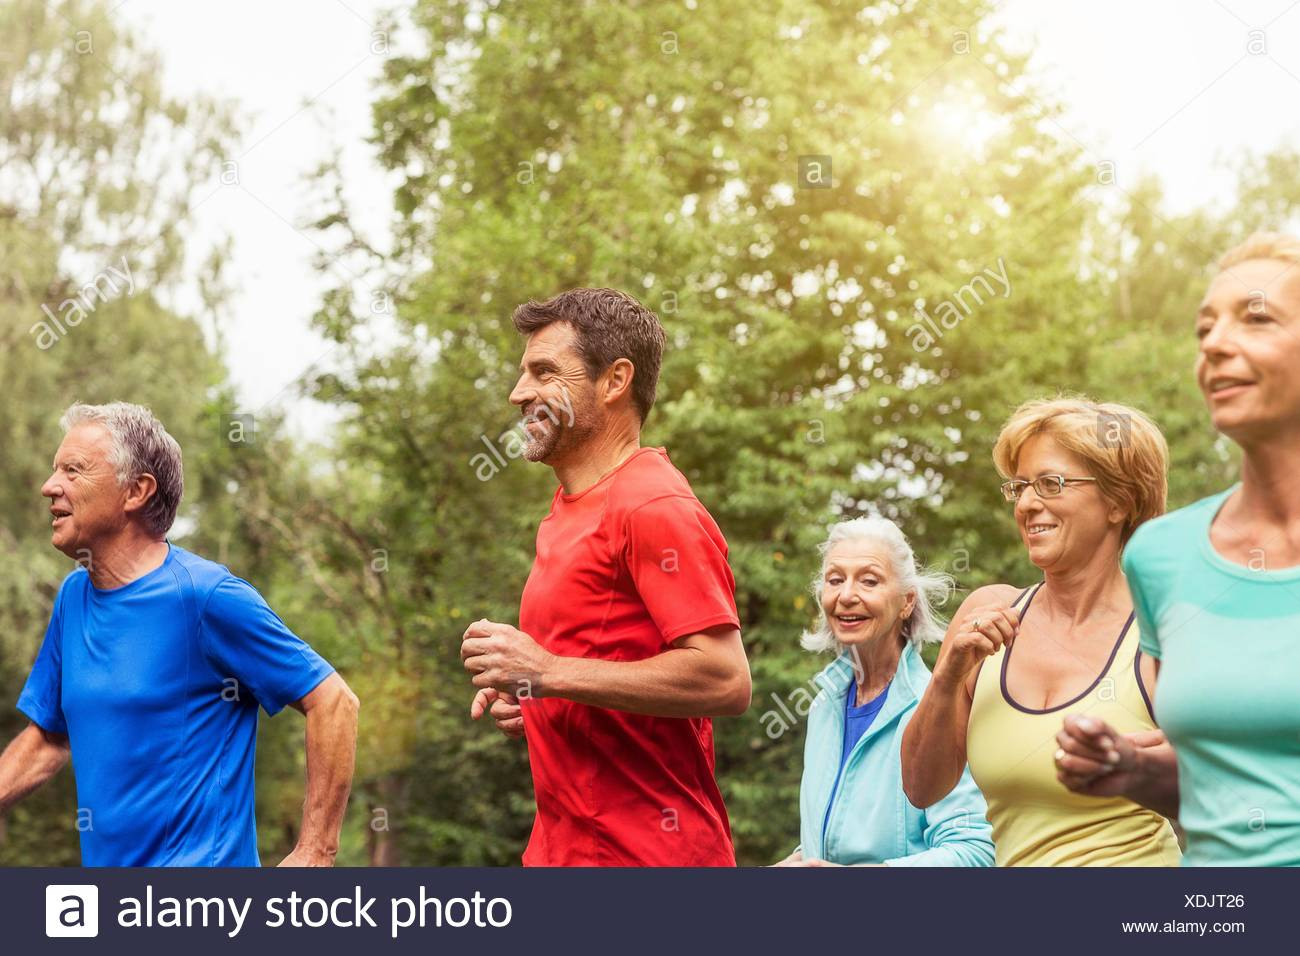 Group of adults running outdoors - Stock Image